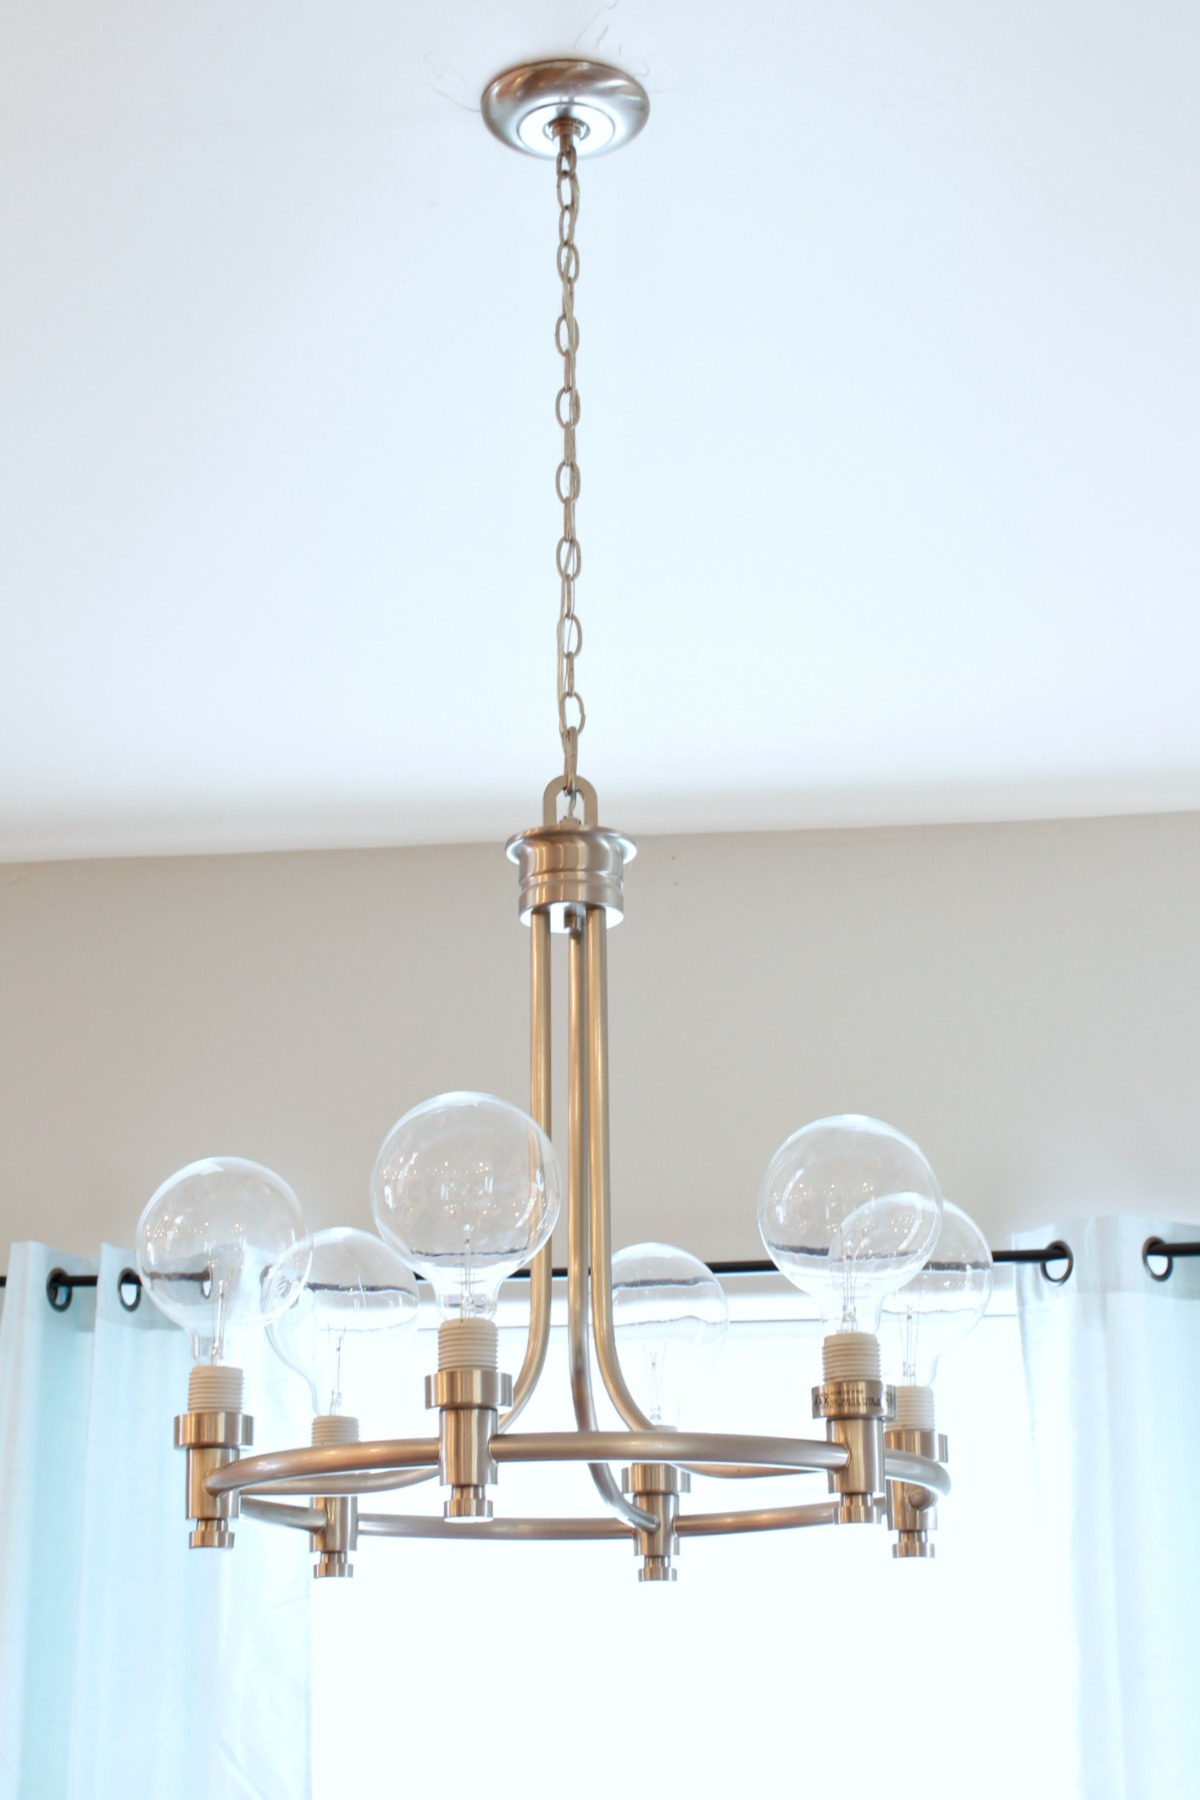 Home Improvement How To Update A Light Fixture Classy Clutter